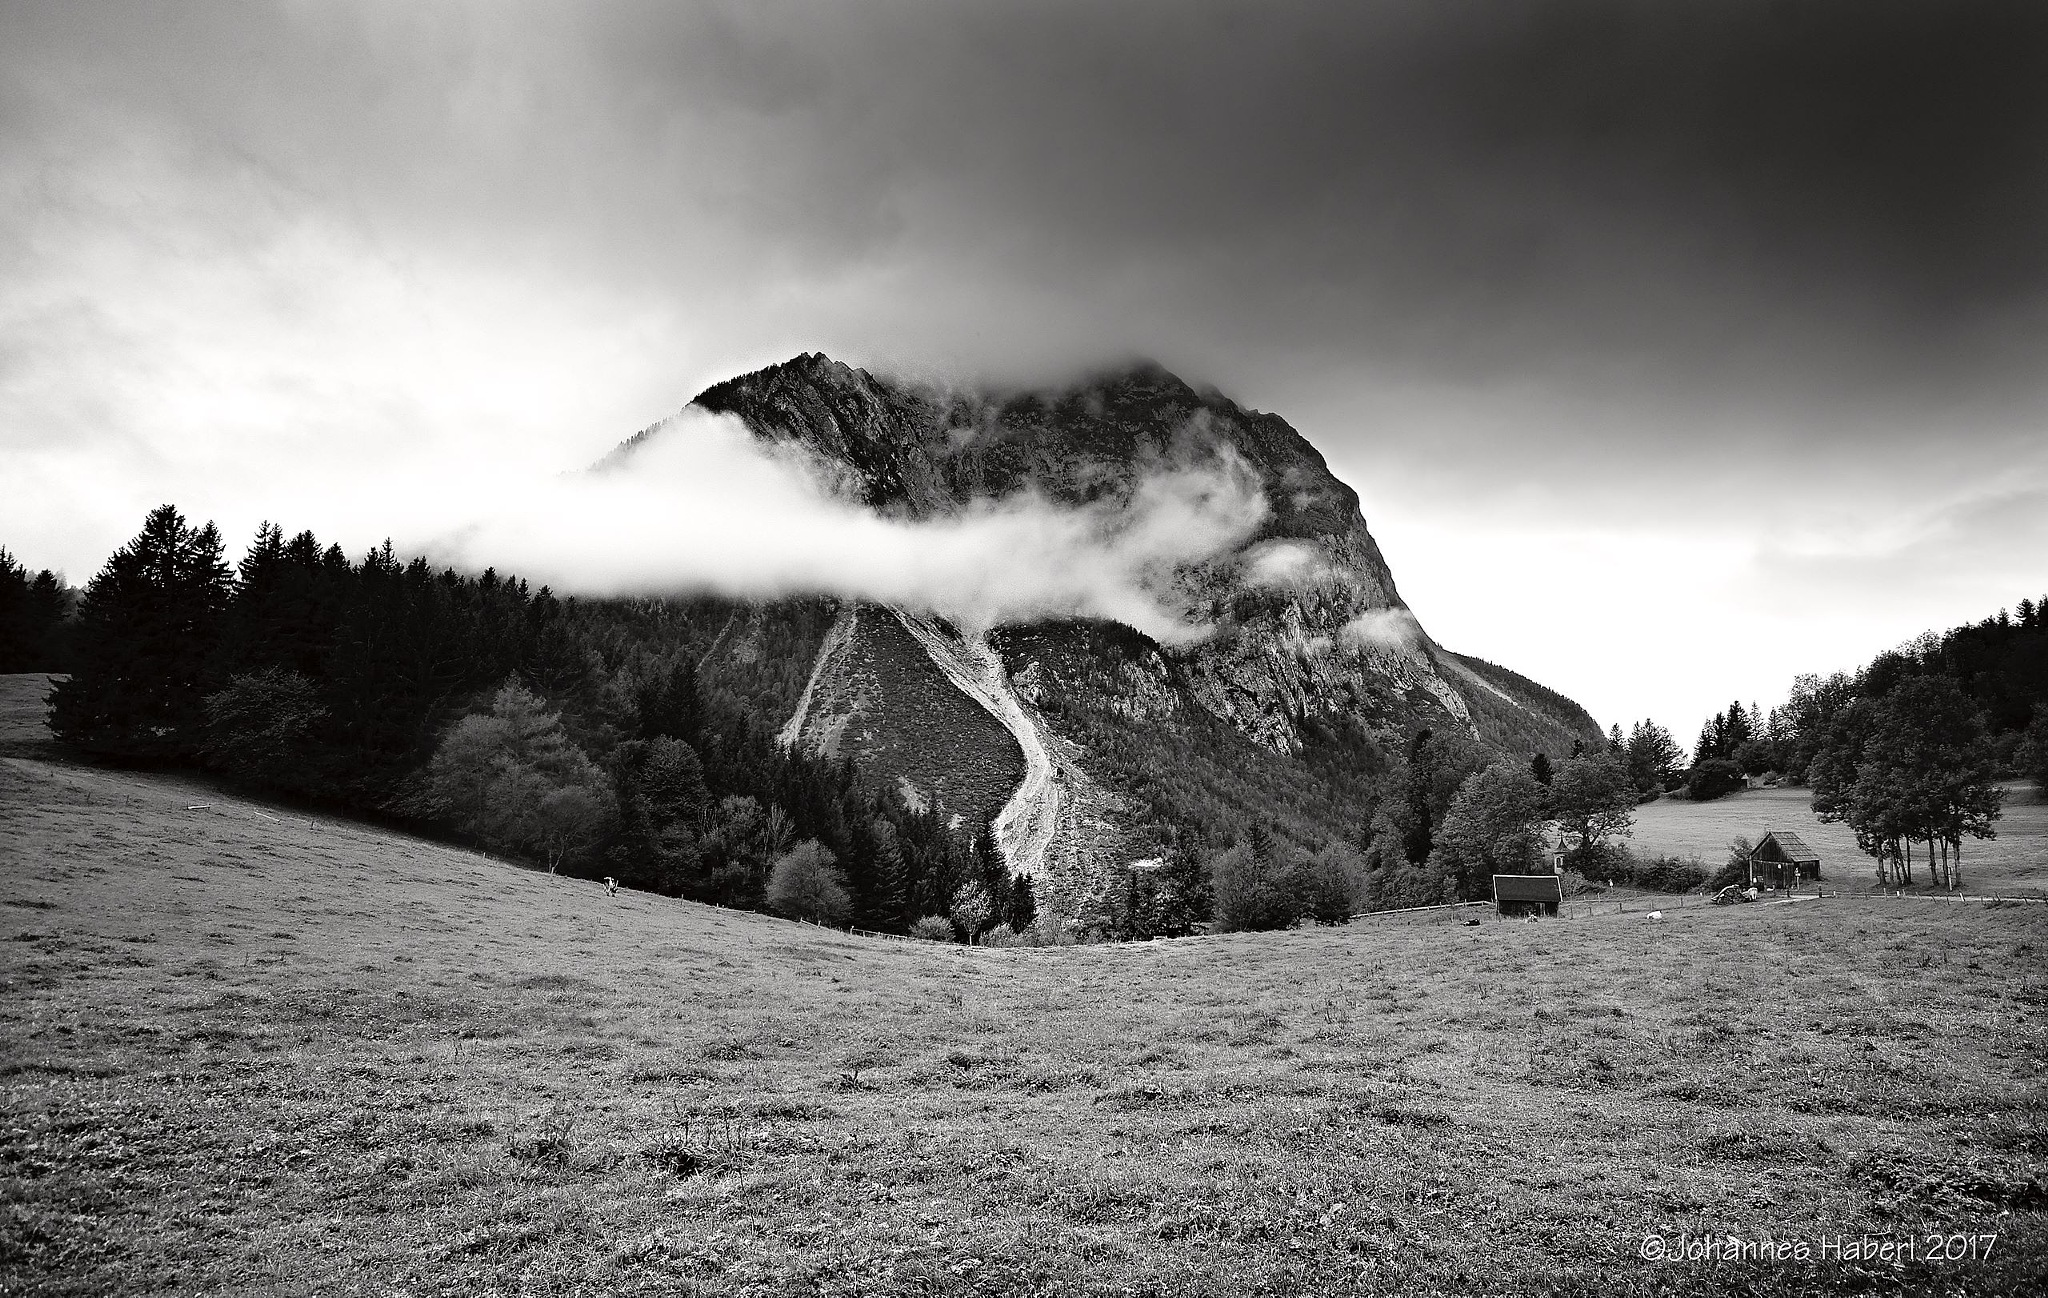 mountain Grimming with clouds / B&W by Johannes Haberl